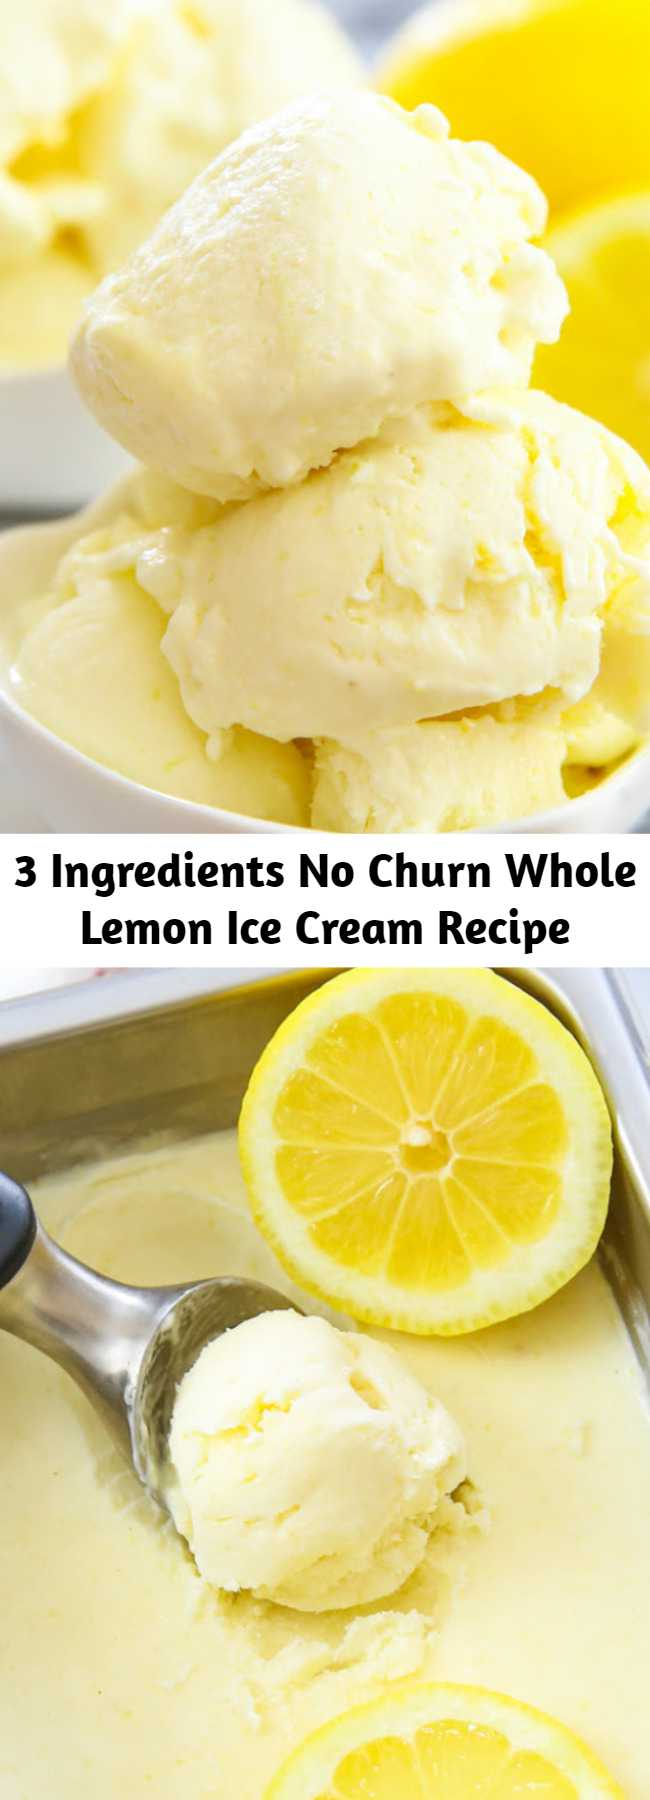 This creamy lemon ice cream uses just 3 ingredients. It's super easy to prepare and you'll have no-churn ice cream the next day.